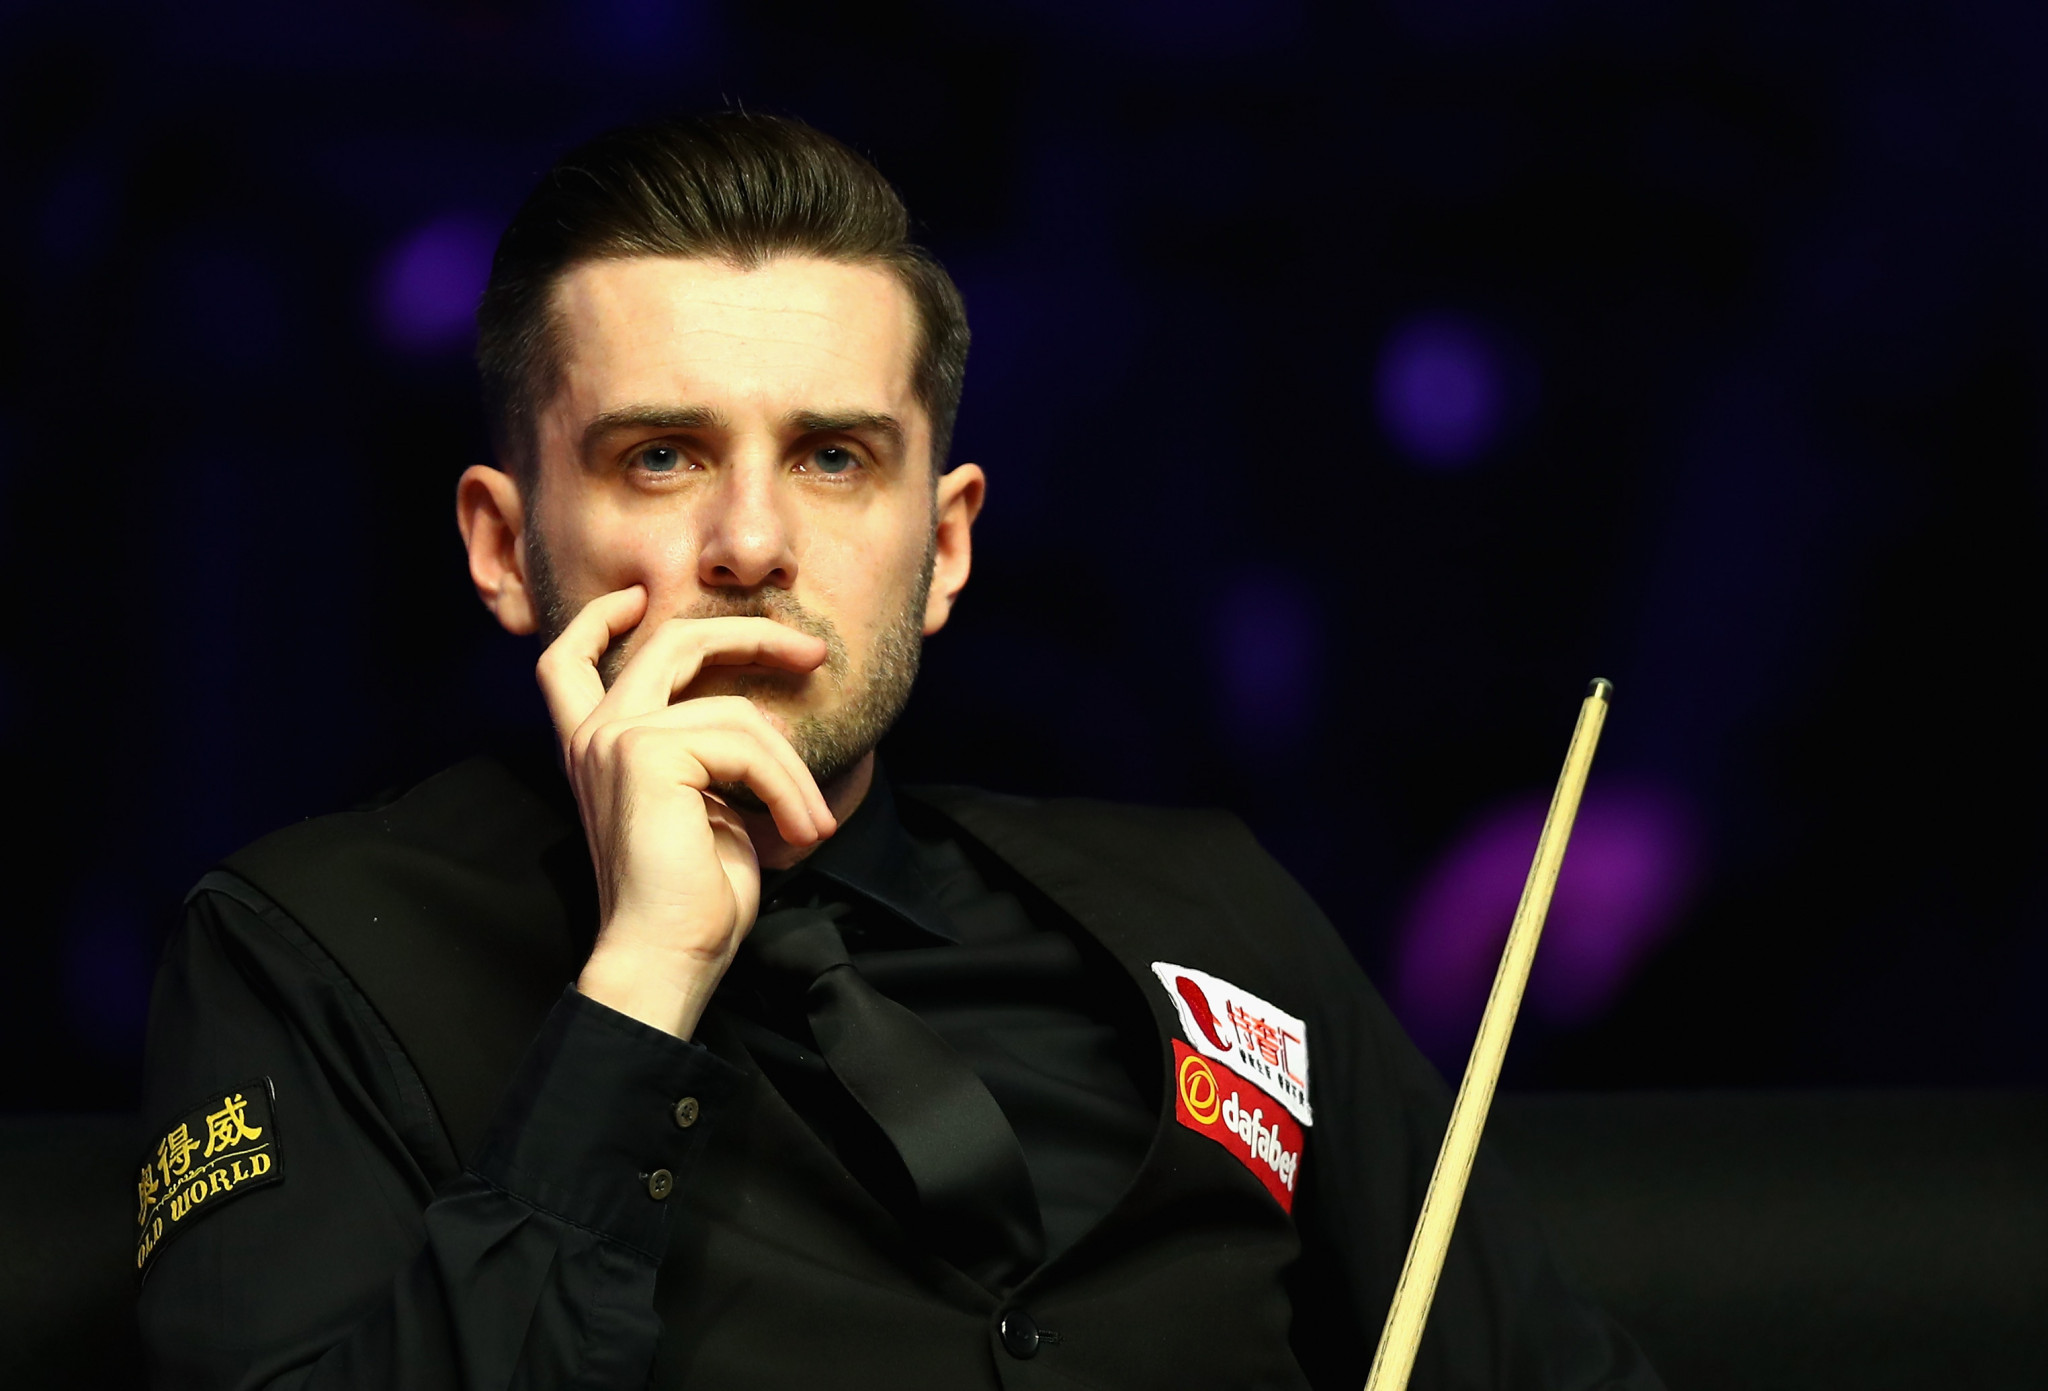 Defending champion Mark Selby will be the top seed at the Crucible ©Getty Images